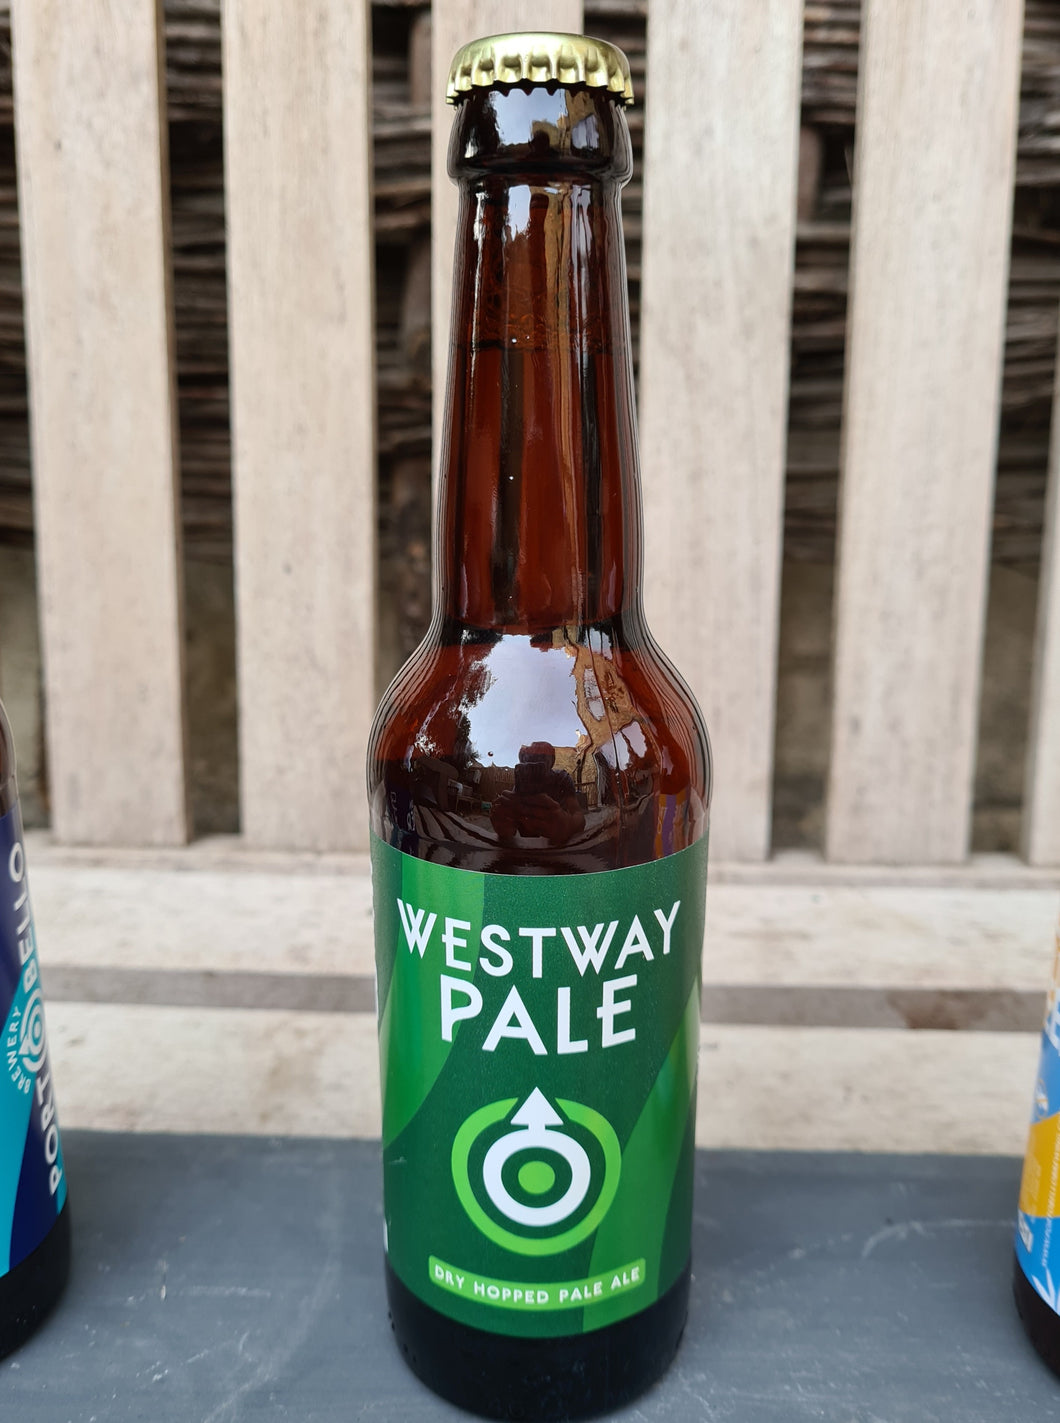 Portobello - Westway Pale - 4% ABV (330ml)